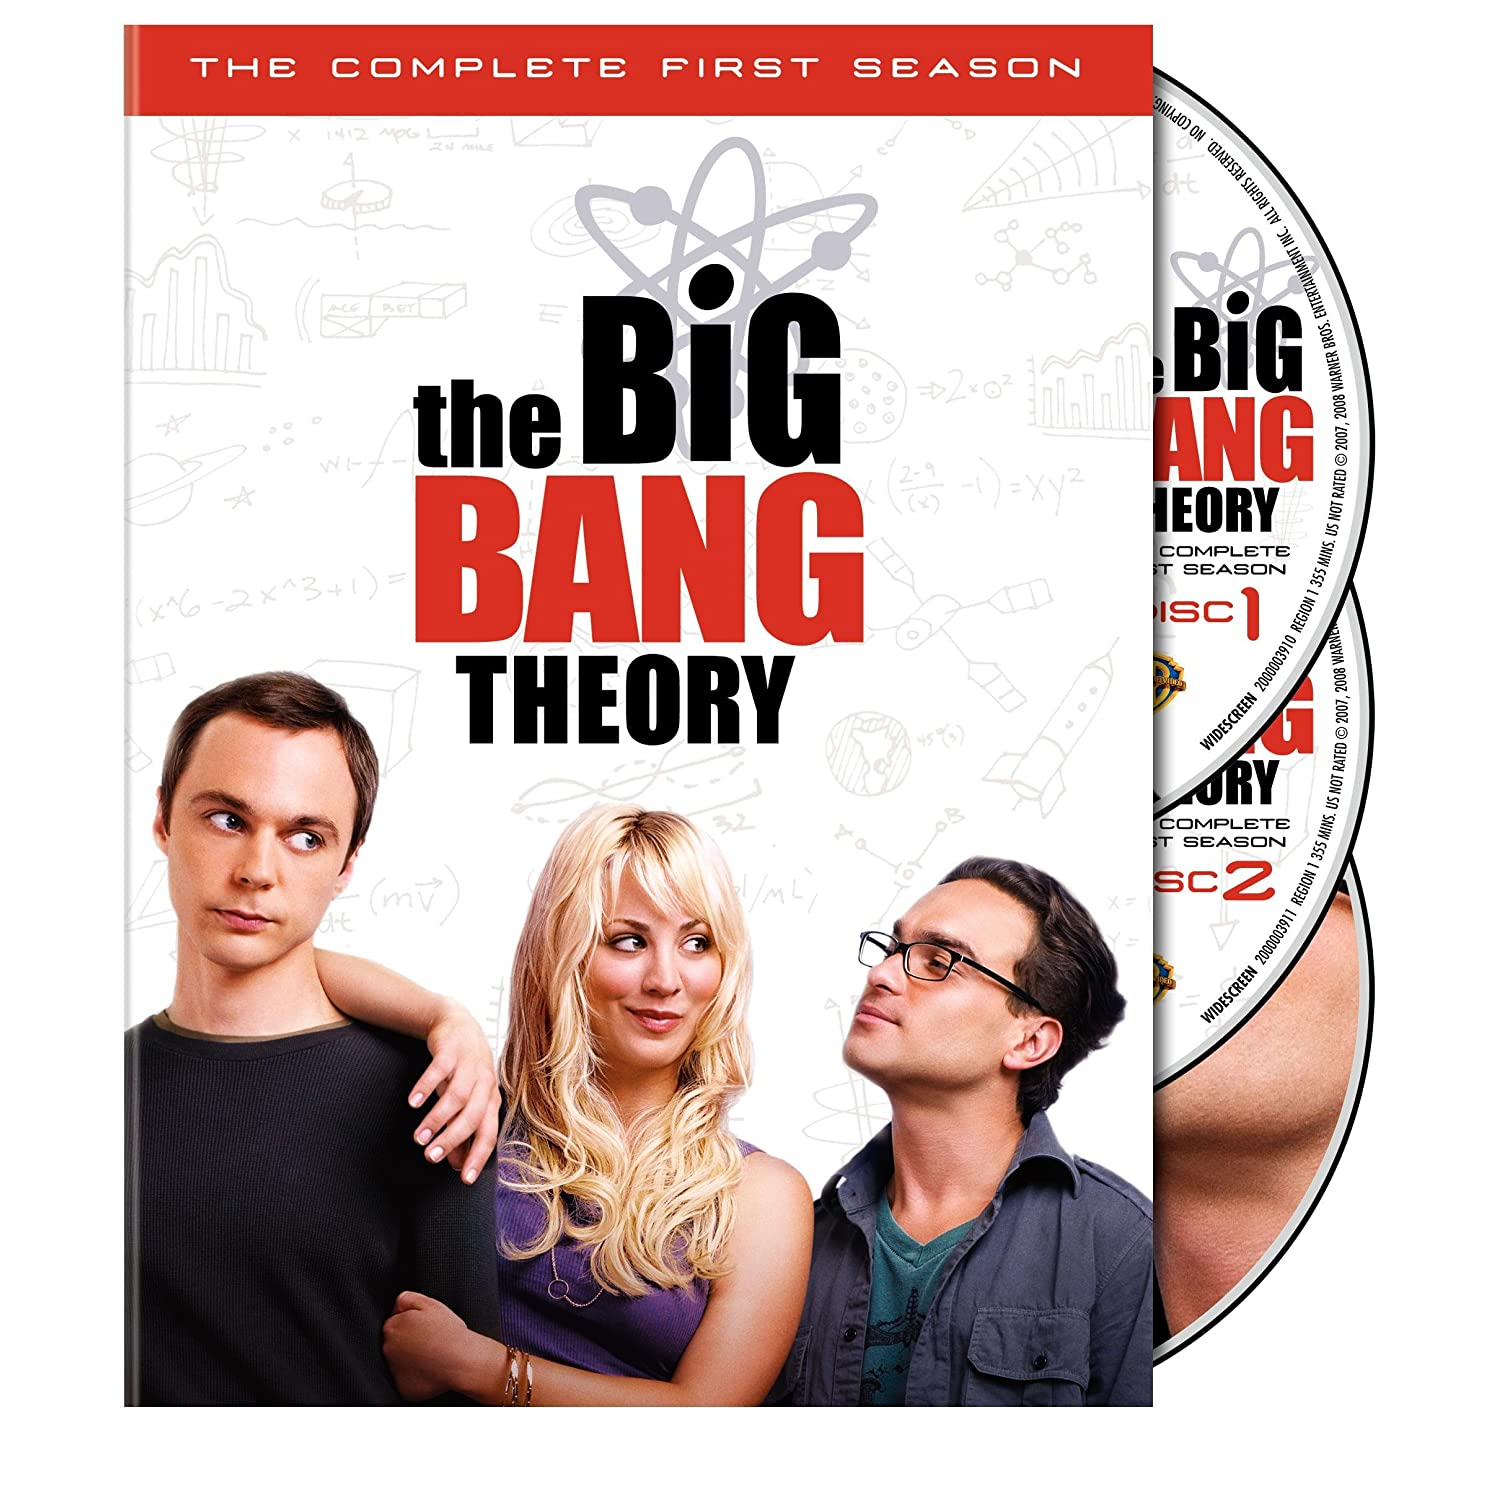 The Big Bang Theory - Temporada 1, 2 3, 4 HD - 720p - Unico!